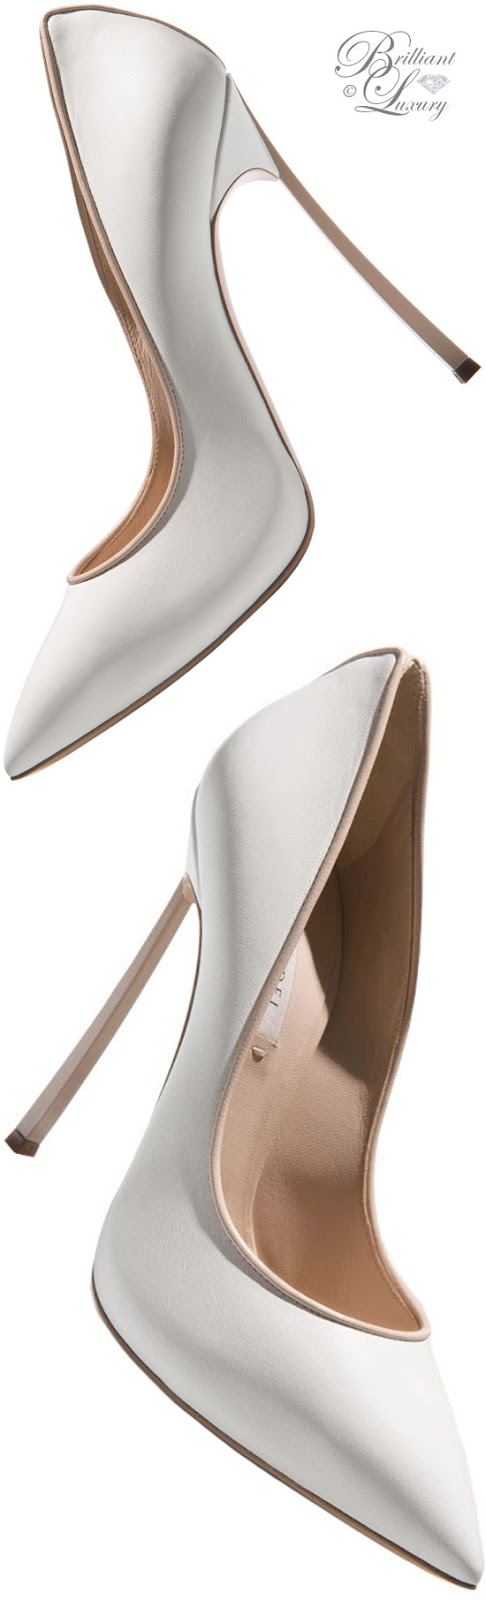 Brilliant Luxury ♦ Fall in ~ Casadei Blade high heels in white